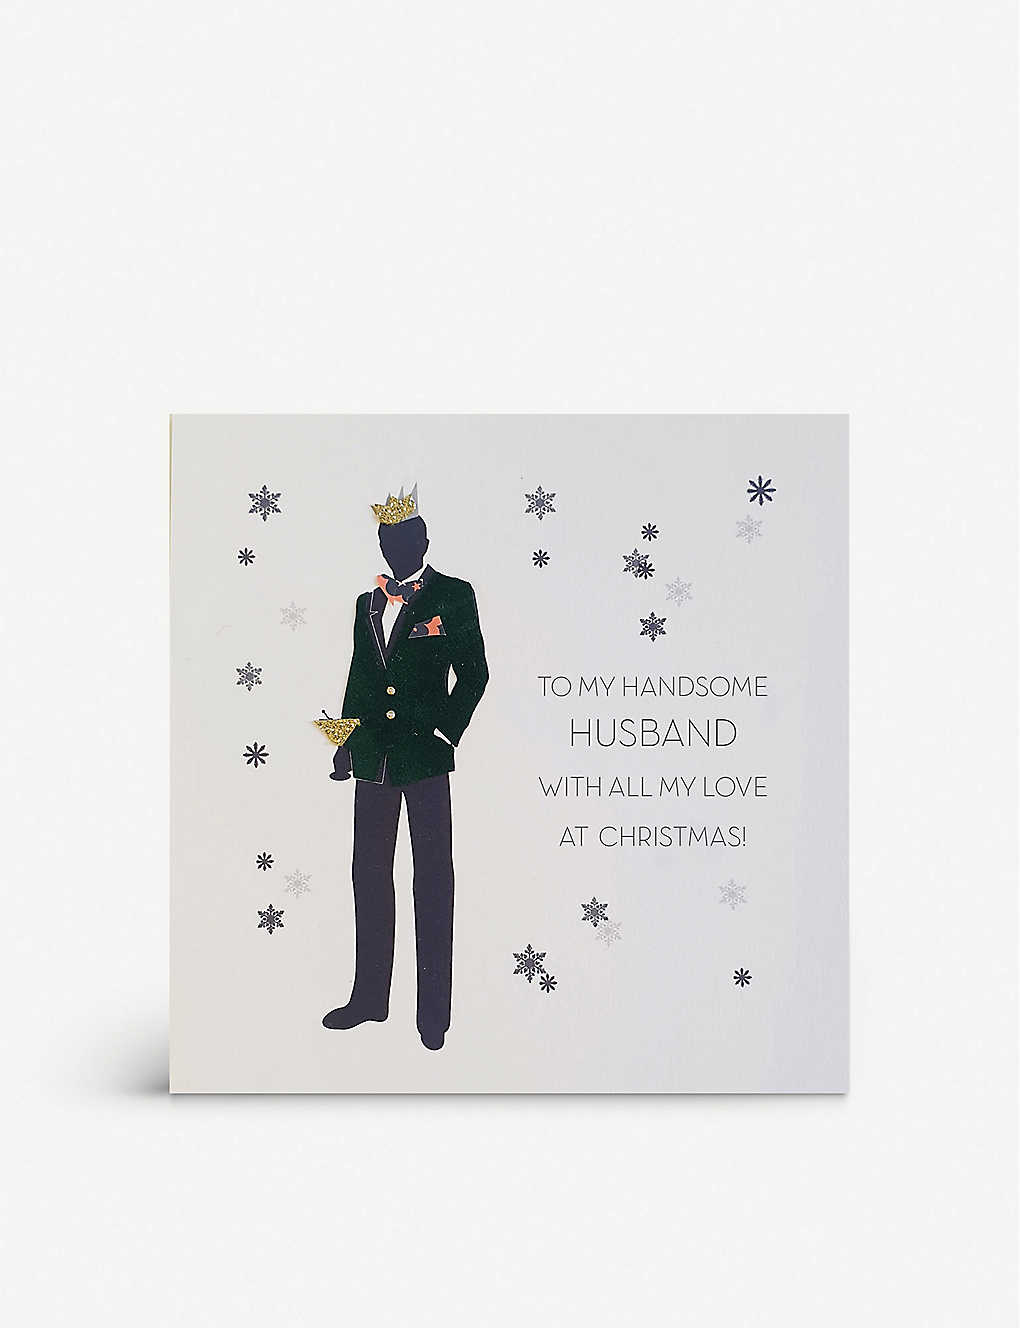 FIVE DOLLAR SHAKE: To My Handsome Husband With All My Love At Christmas greetings card 17cm x 17cm